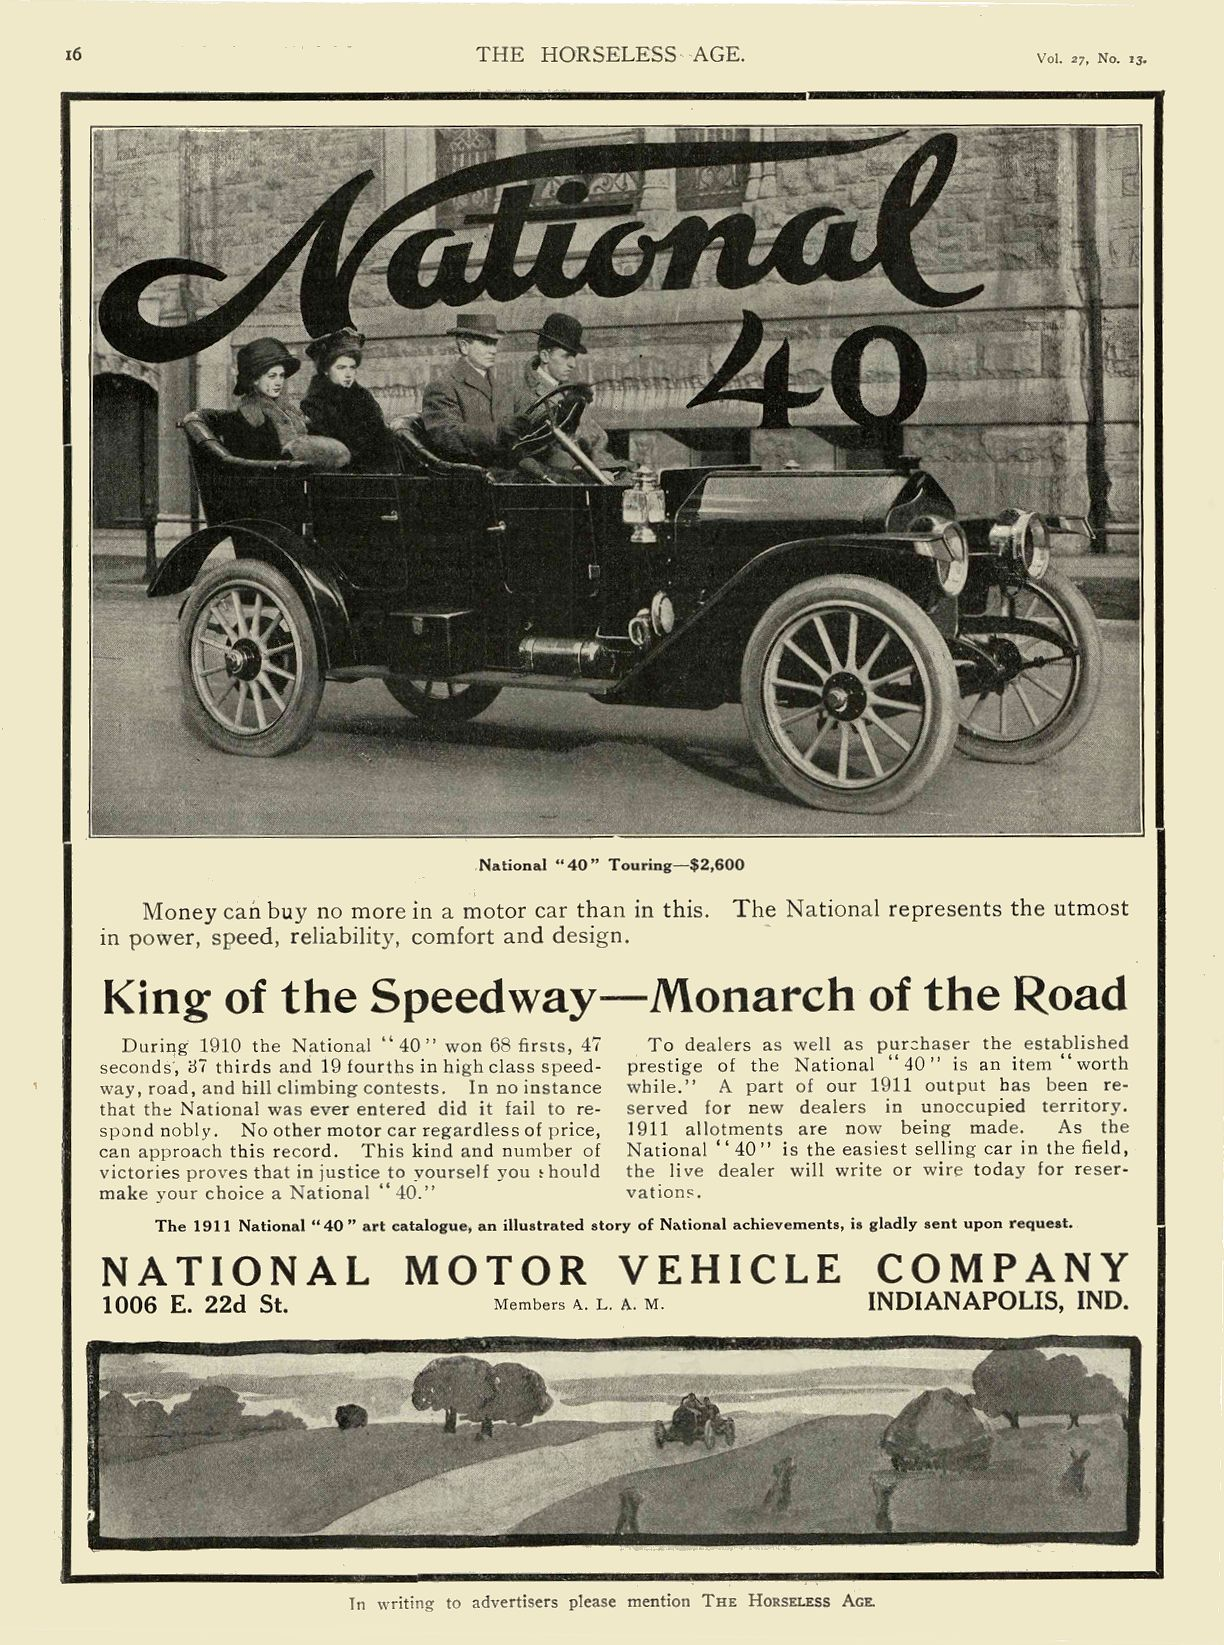 1911 3 29 NATIONAL King of the Speedway Monarch of the Road NATIONAL MOTOR VEHICLE COMPANY Indianapolis, IND THE HORSELESS AGE March 29, 1911 8.25″x11″ page 16